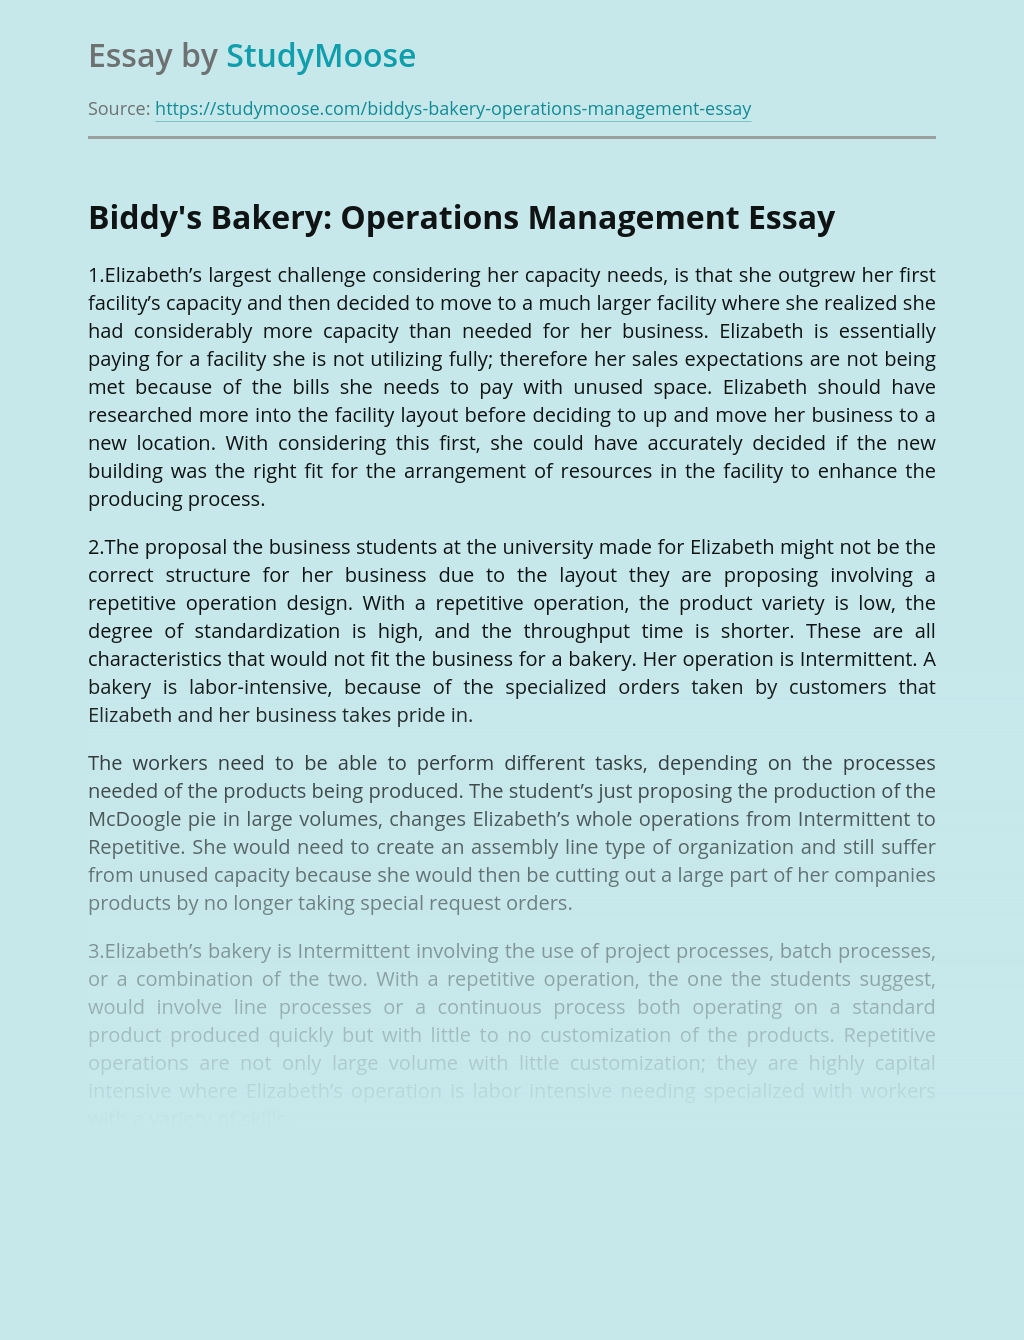 Biddy's Bakery: Operations Management